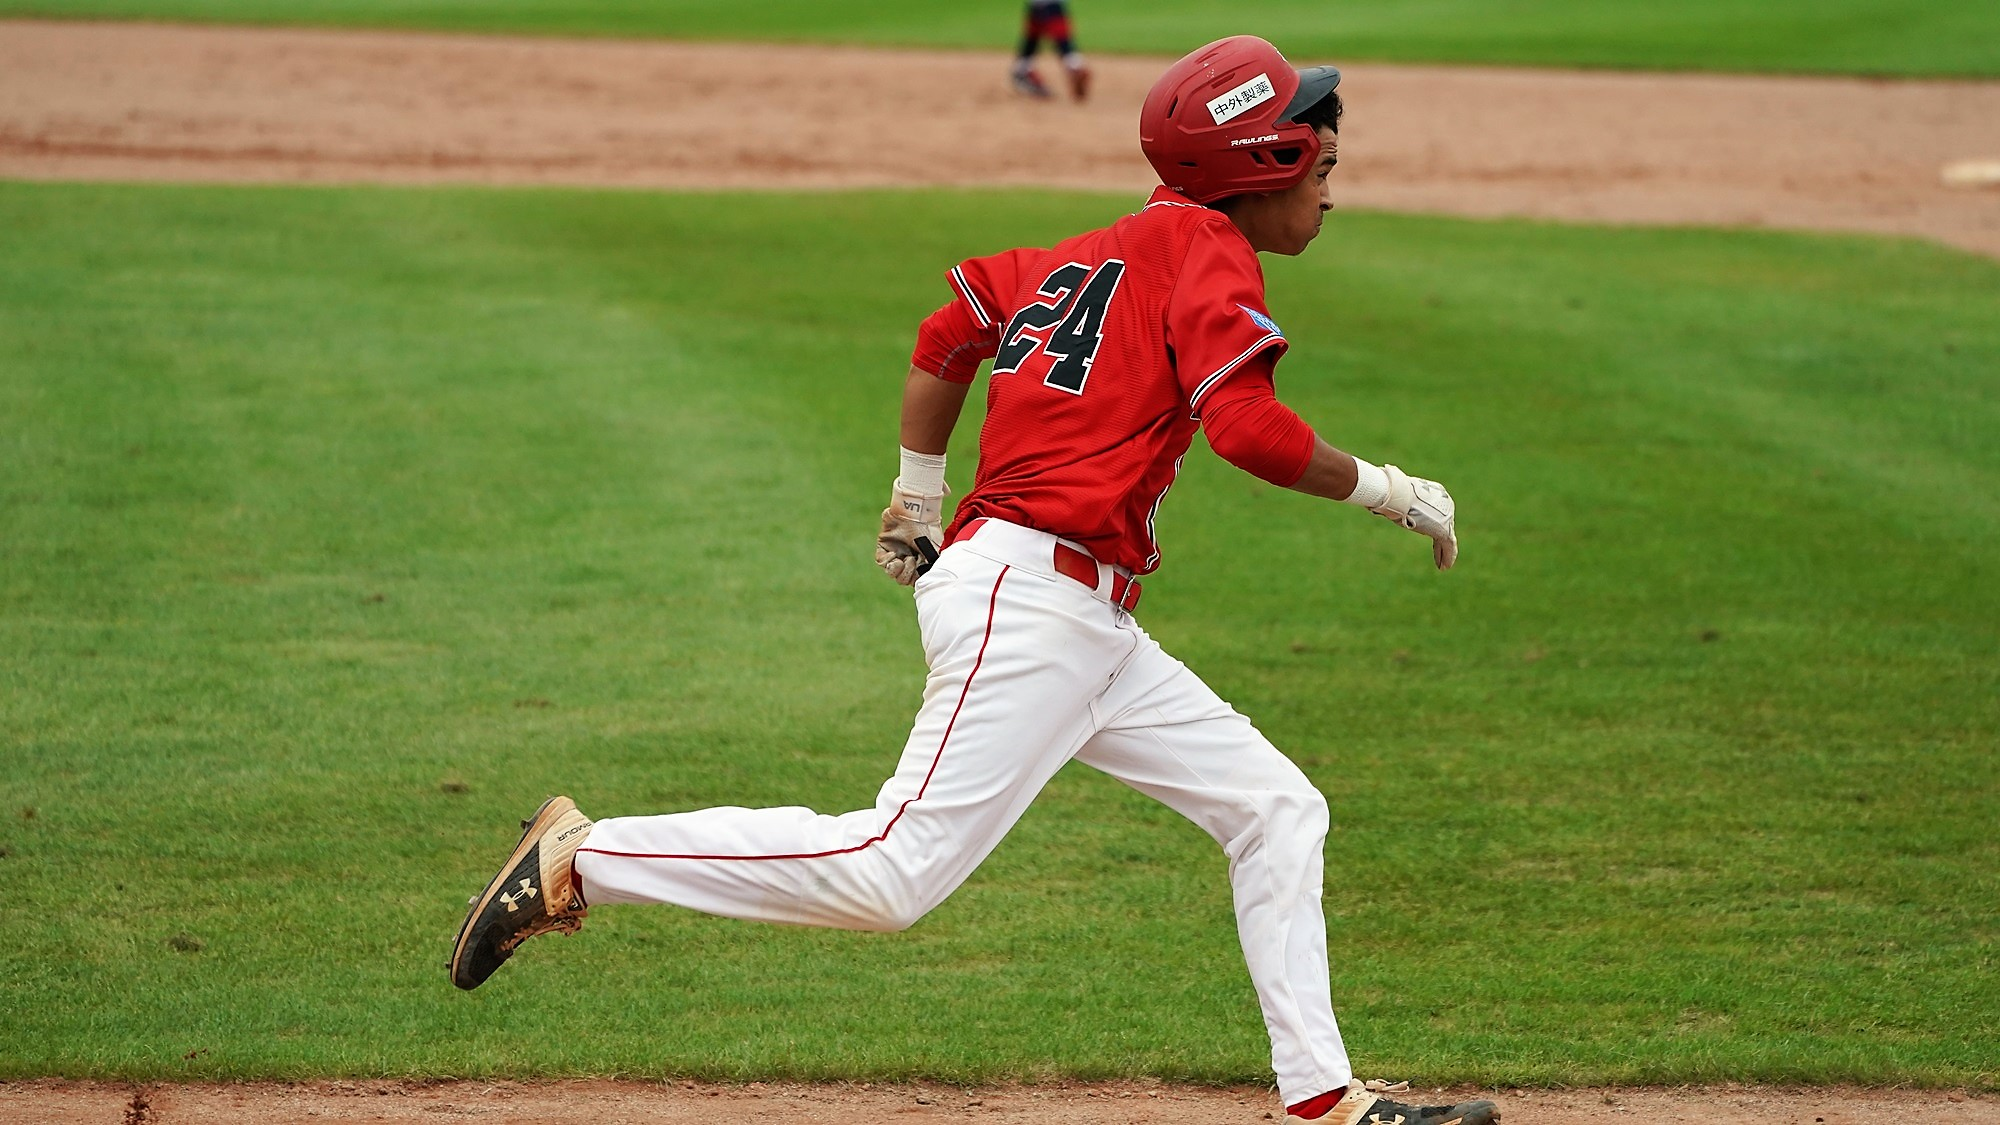 Micah Mc Dowell runs the bases, one of rare Canada's runners